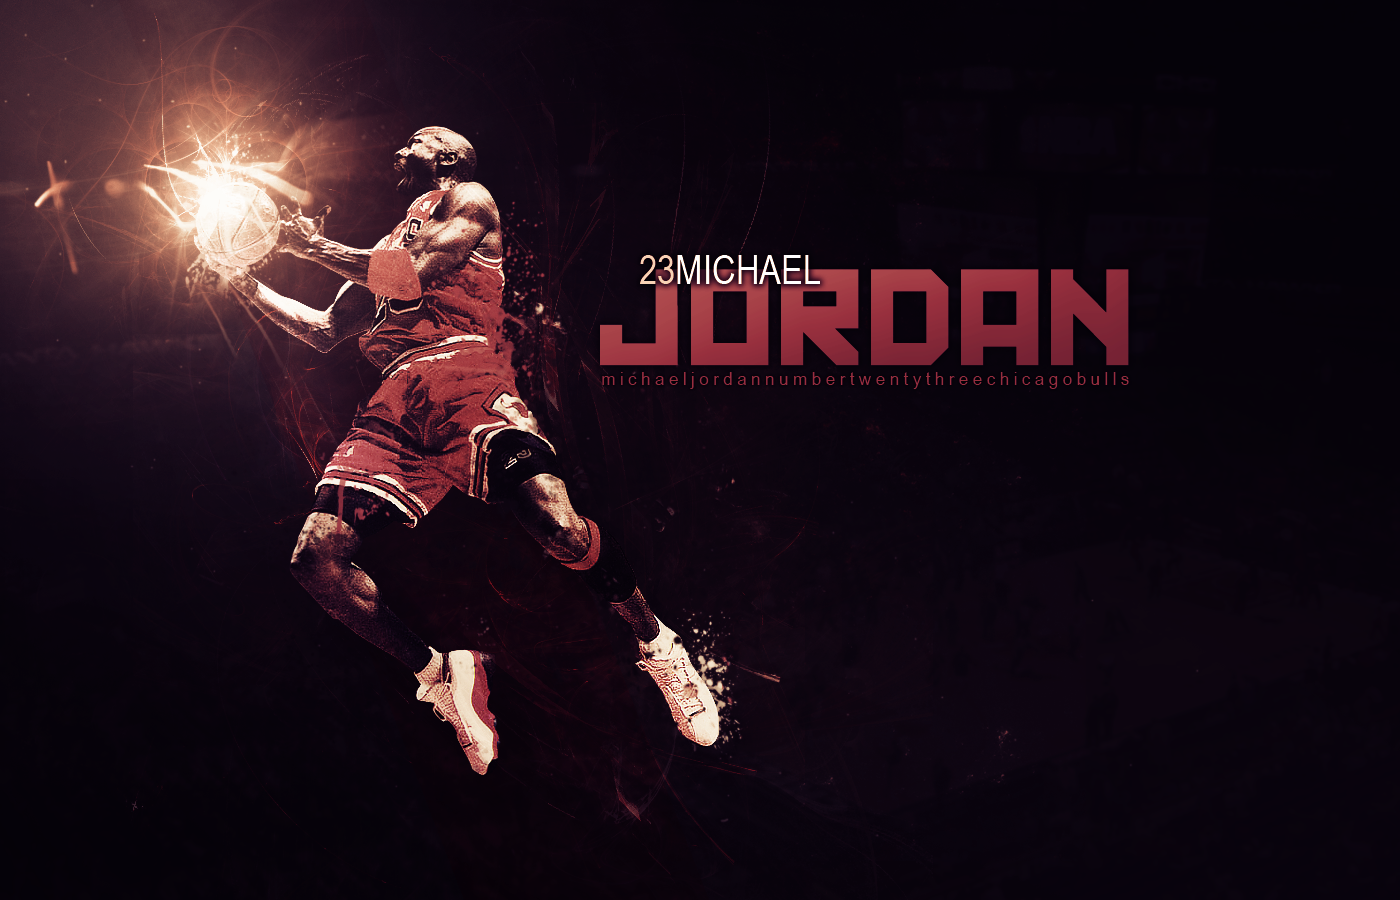 Michael Jordan 23 Wallpaper: 23 // Michael Jordan // Wallpaper